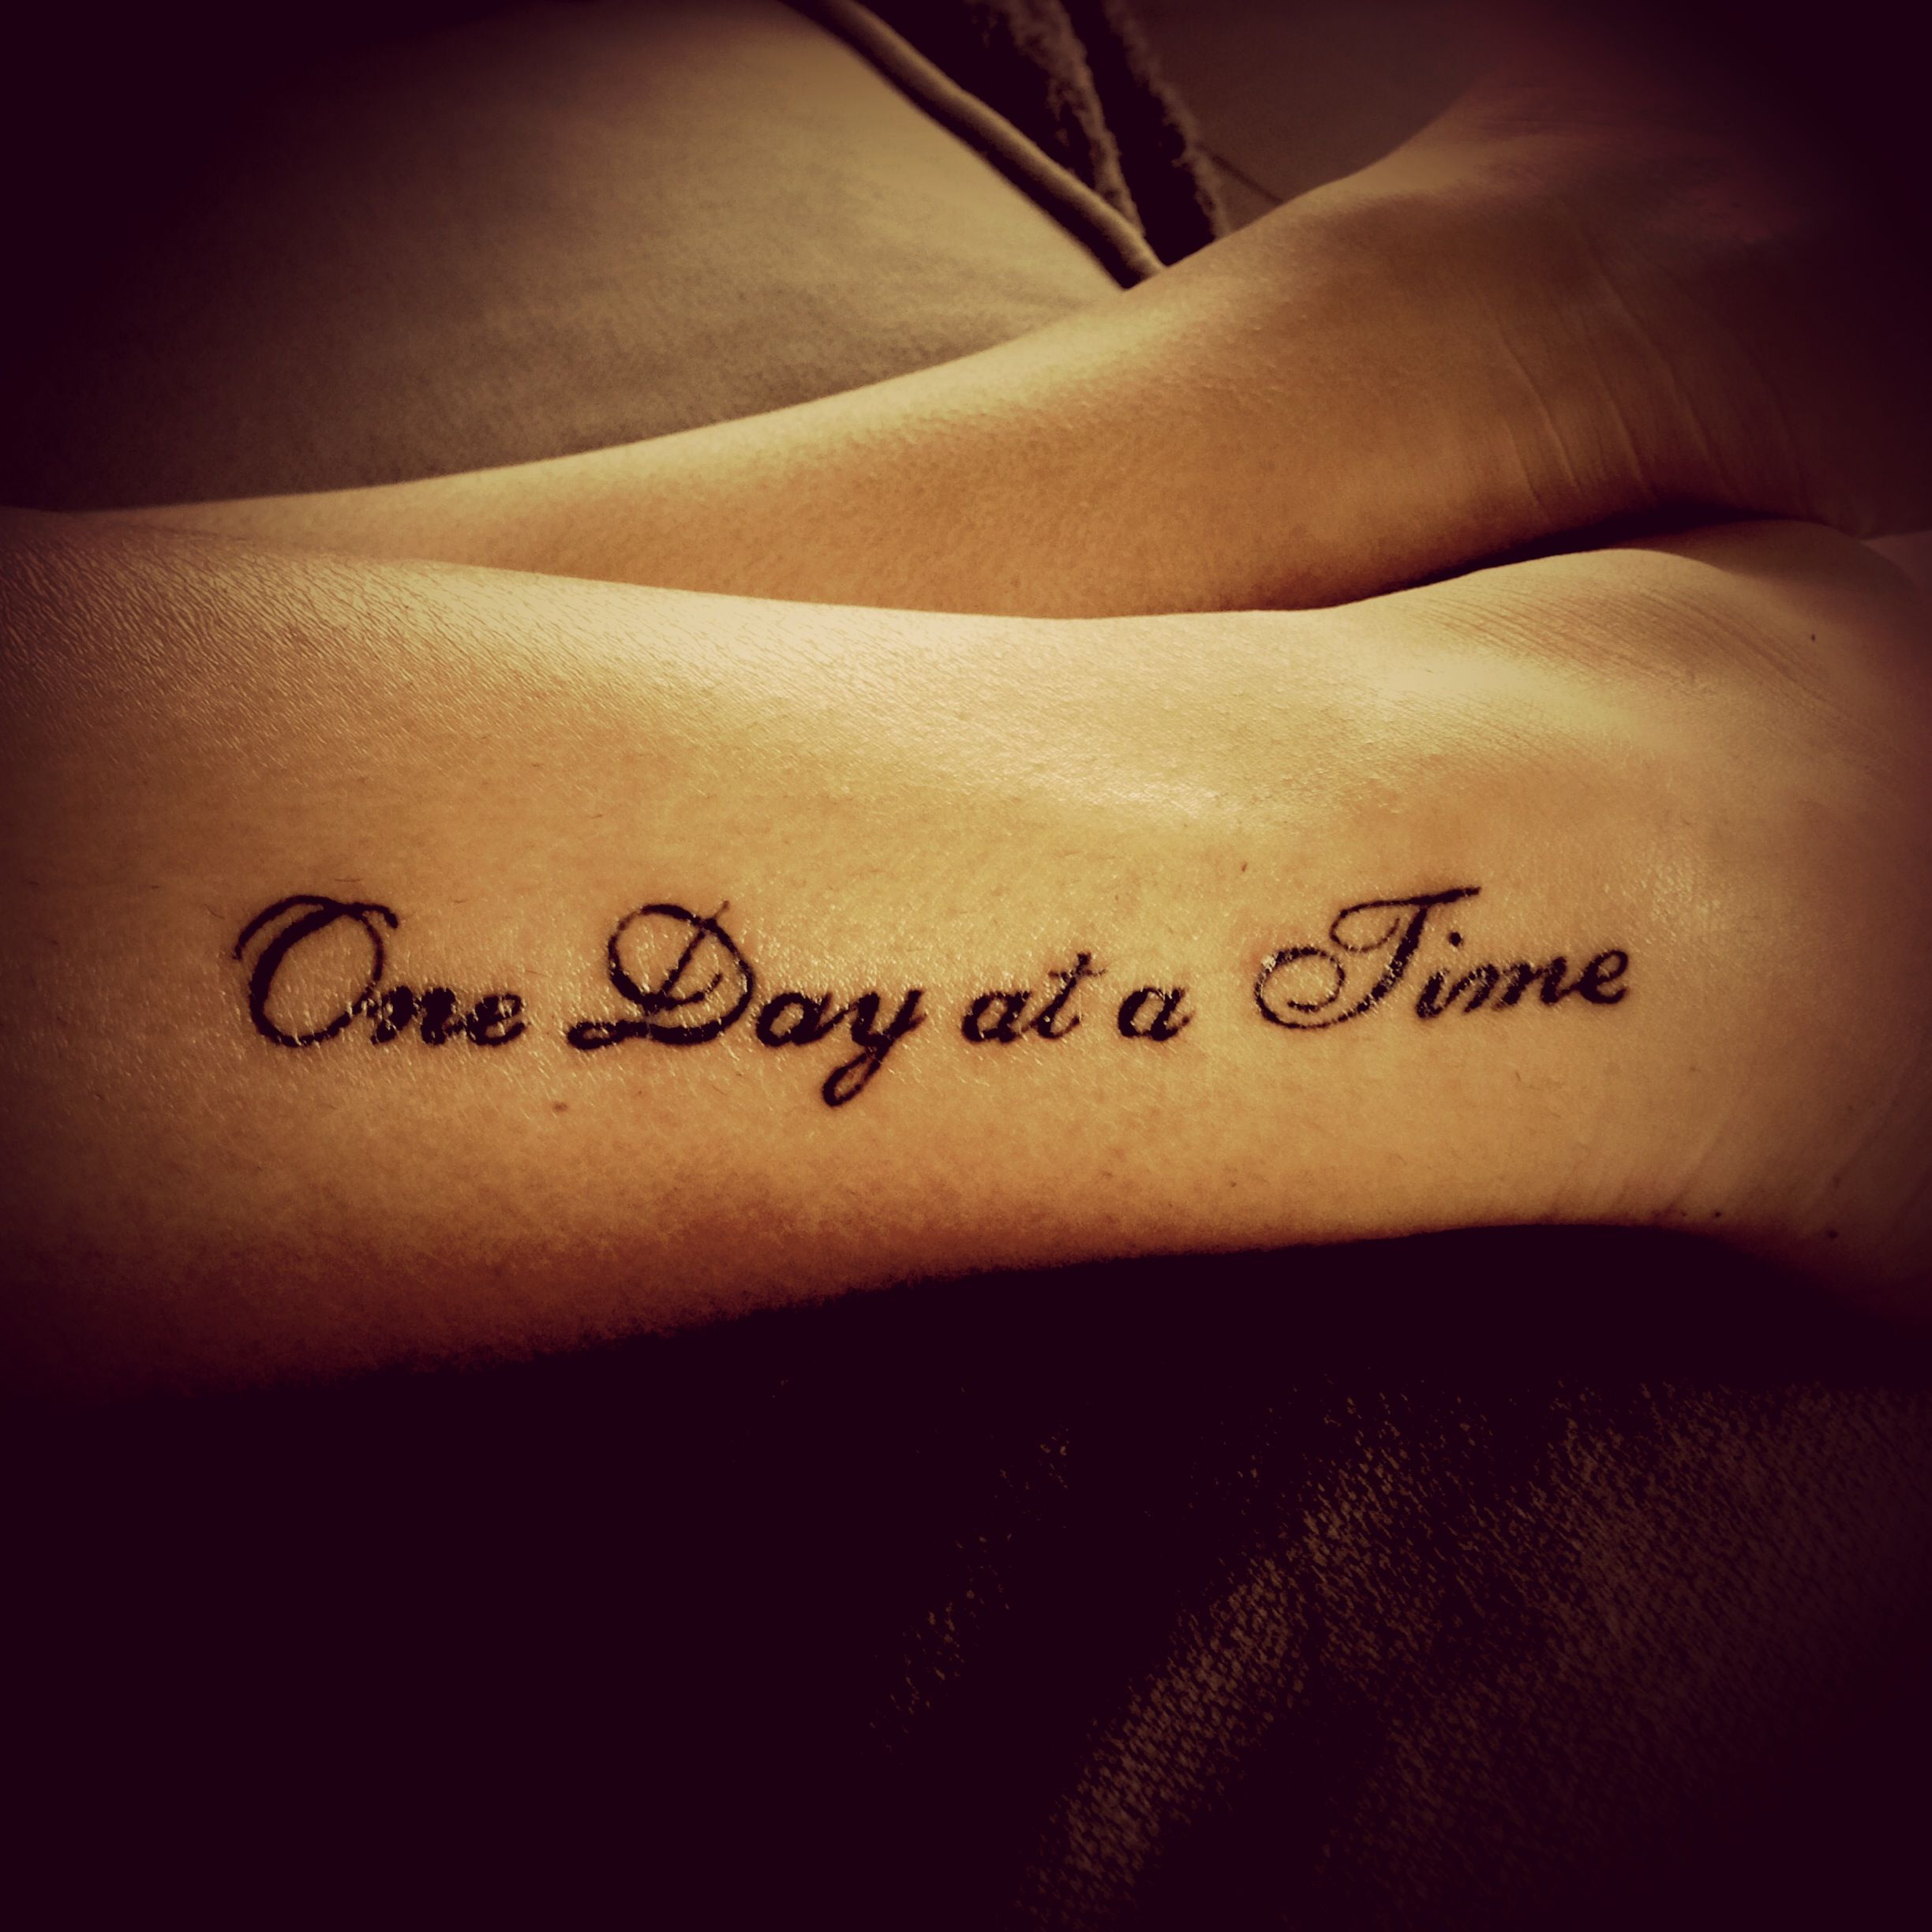 One Day At A Time Tattoo I Want This But On My Foot Things I Love